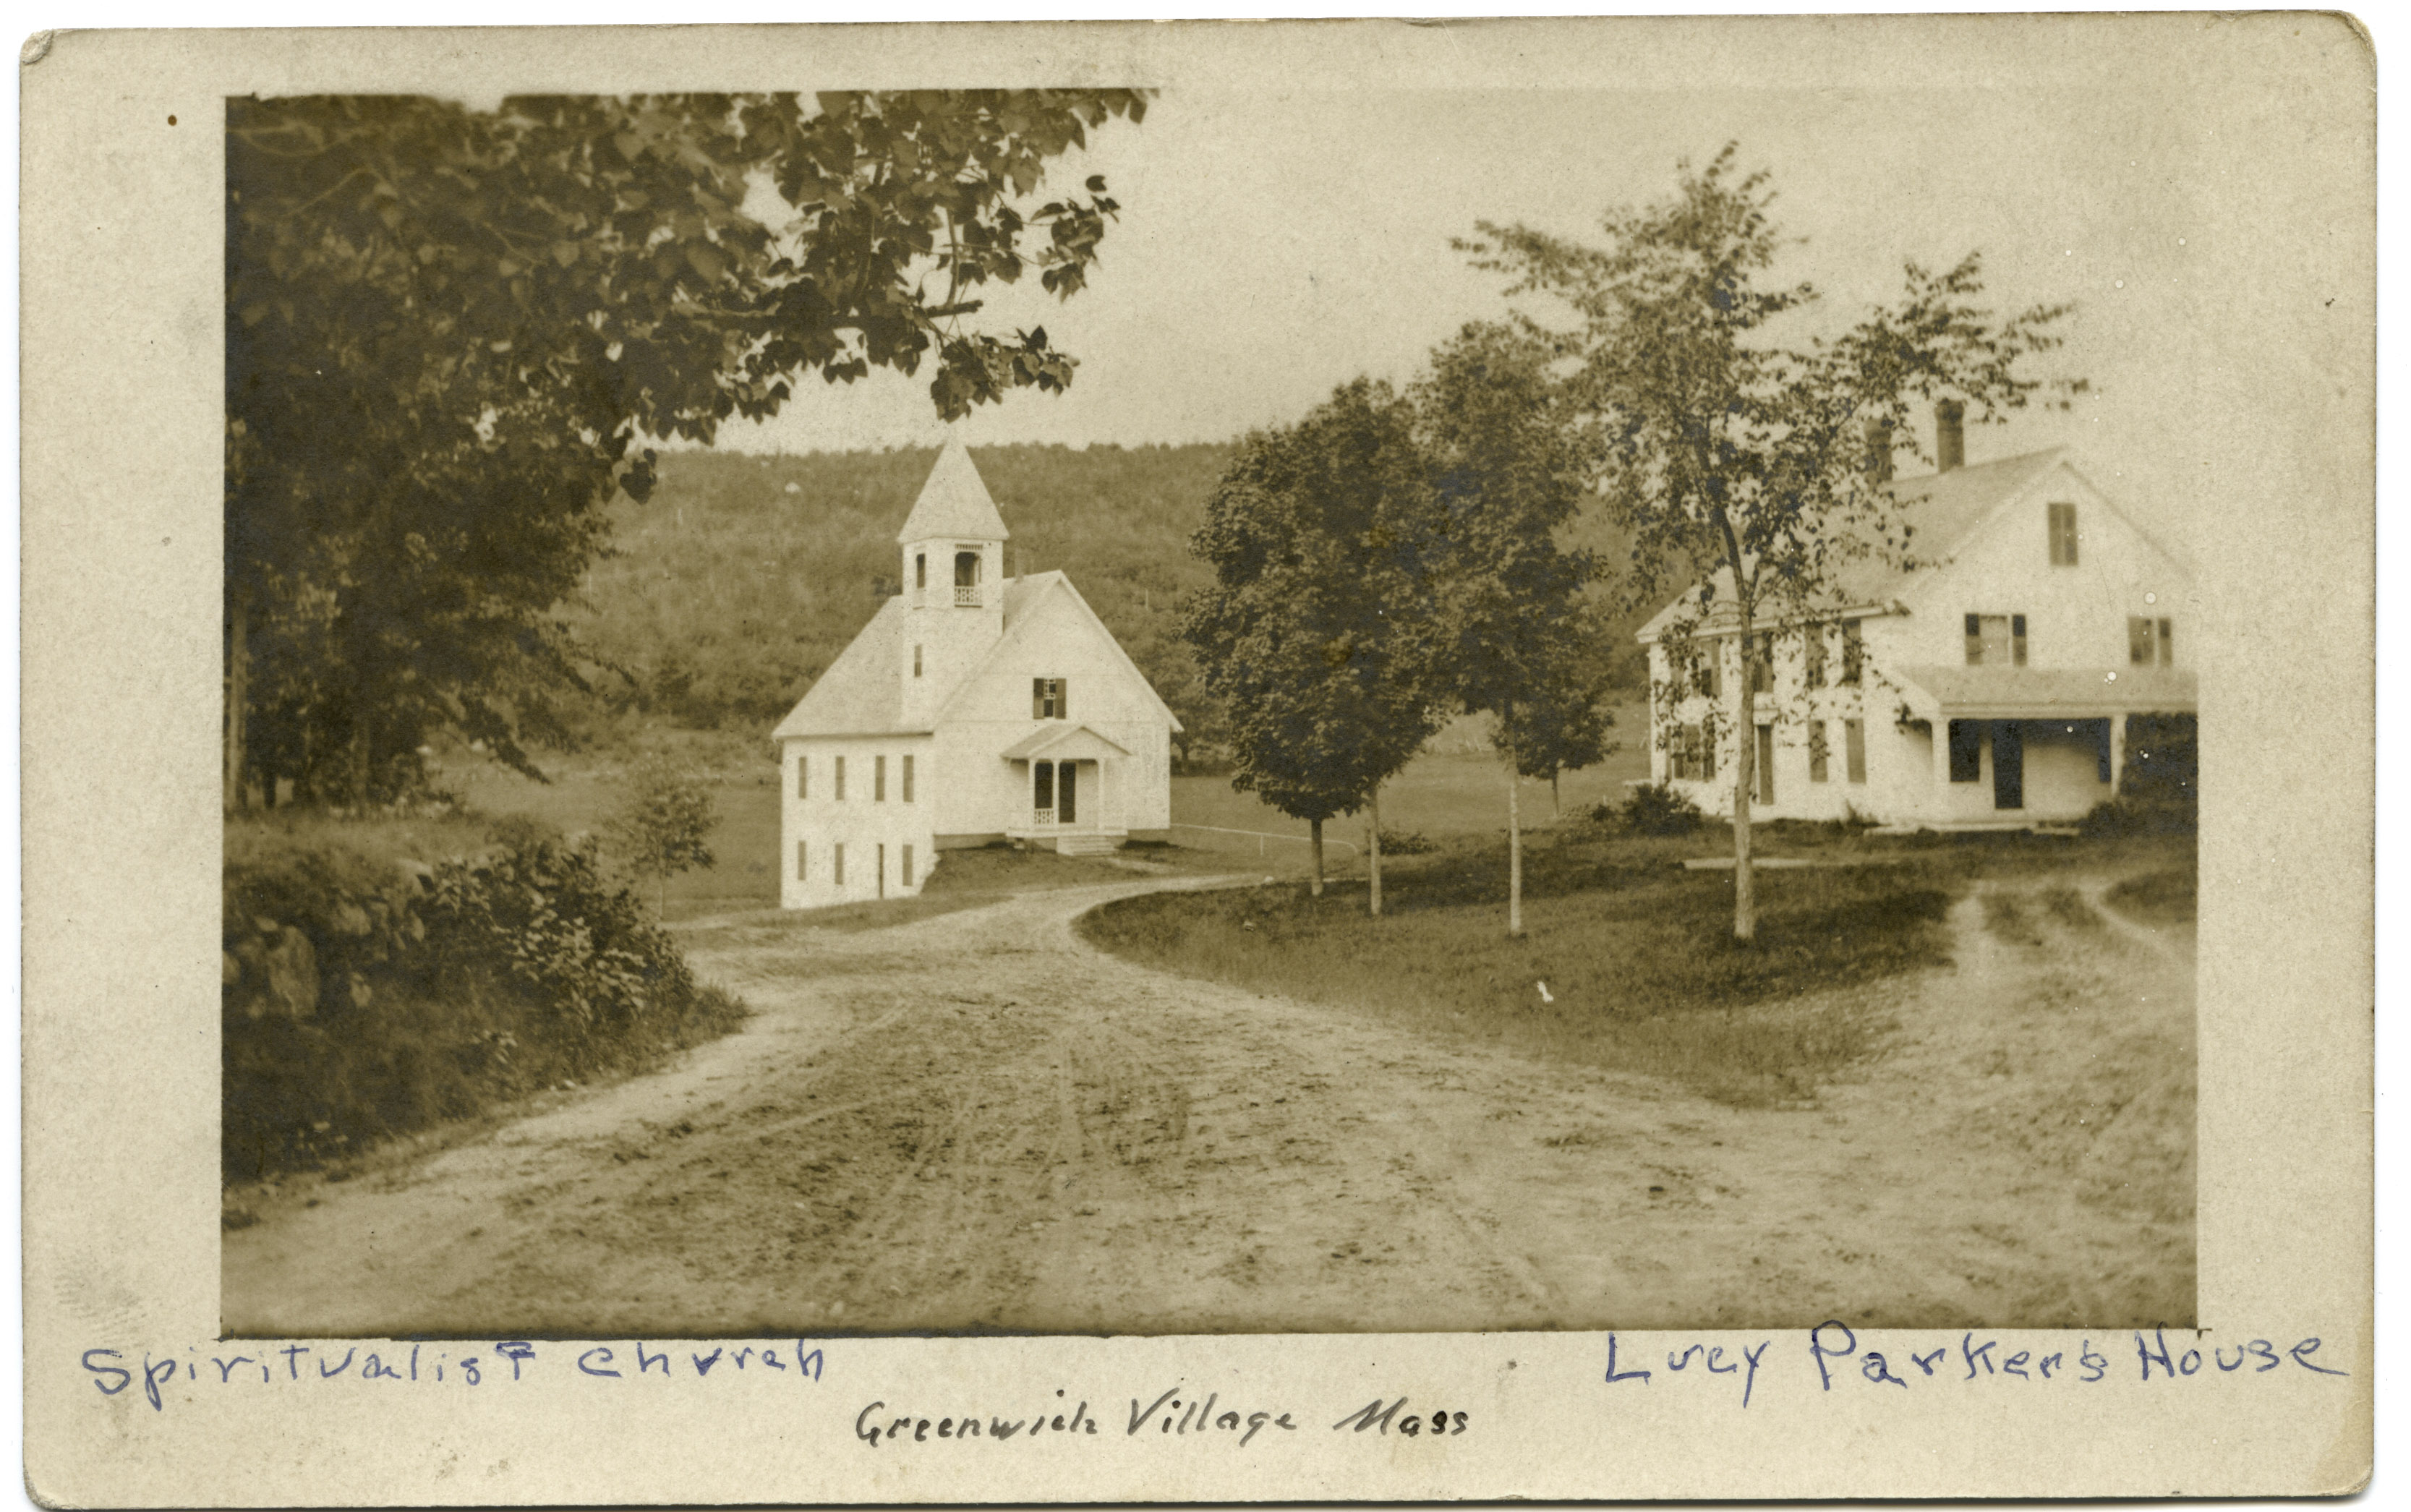 Image of Spiritualist Church and Lucy Parker's house, ca.1908